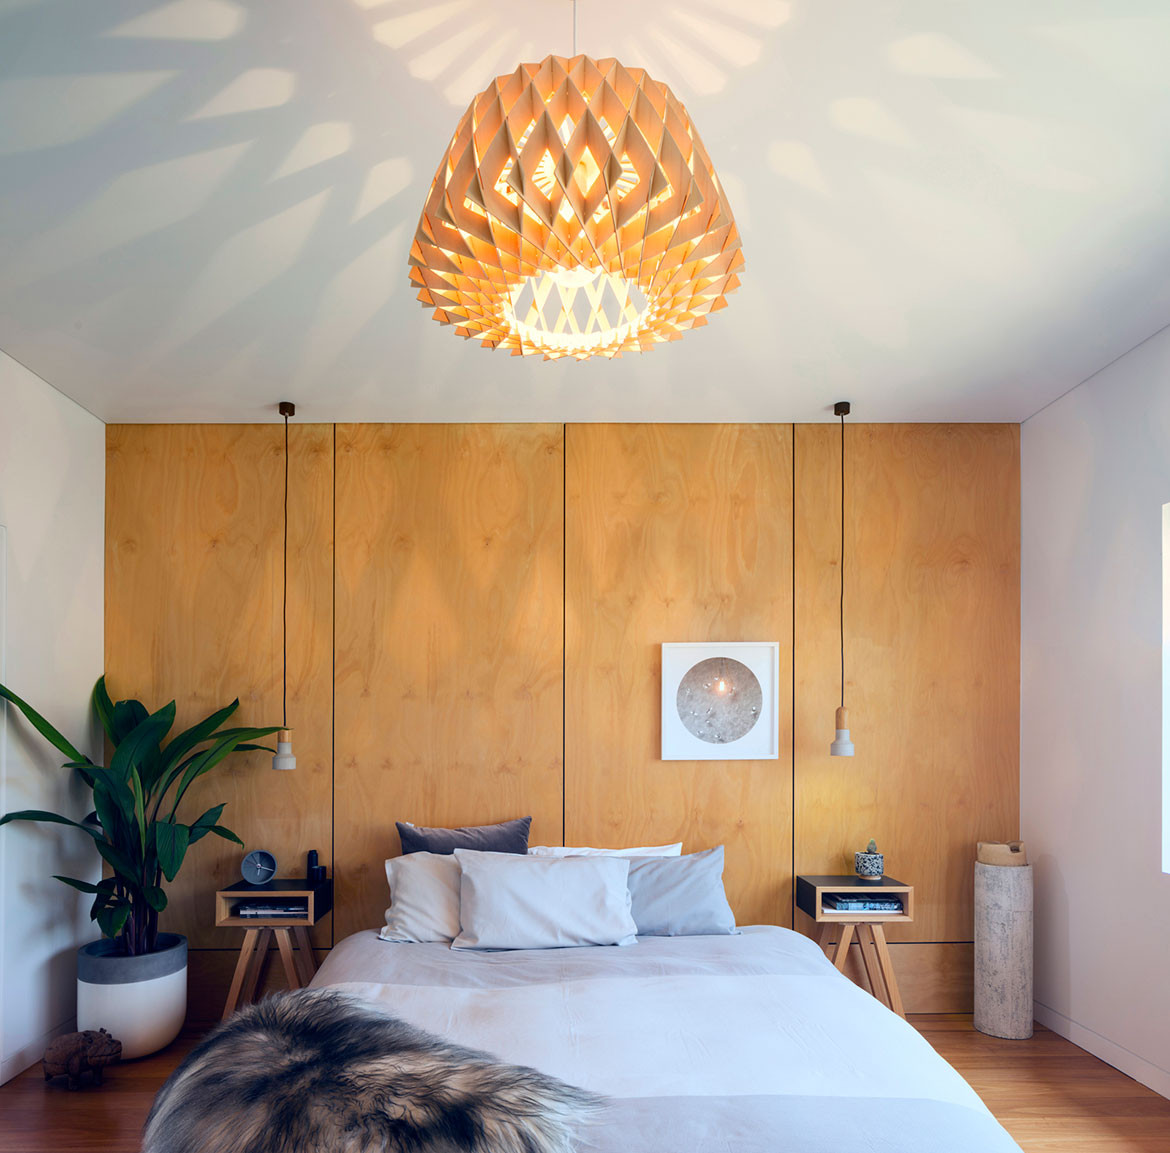 Binary House Christopher Polly Architect cc Brett Boardman bedroom